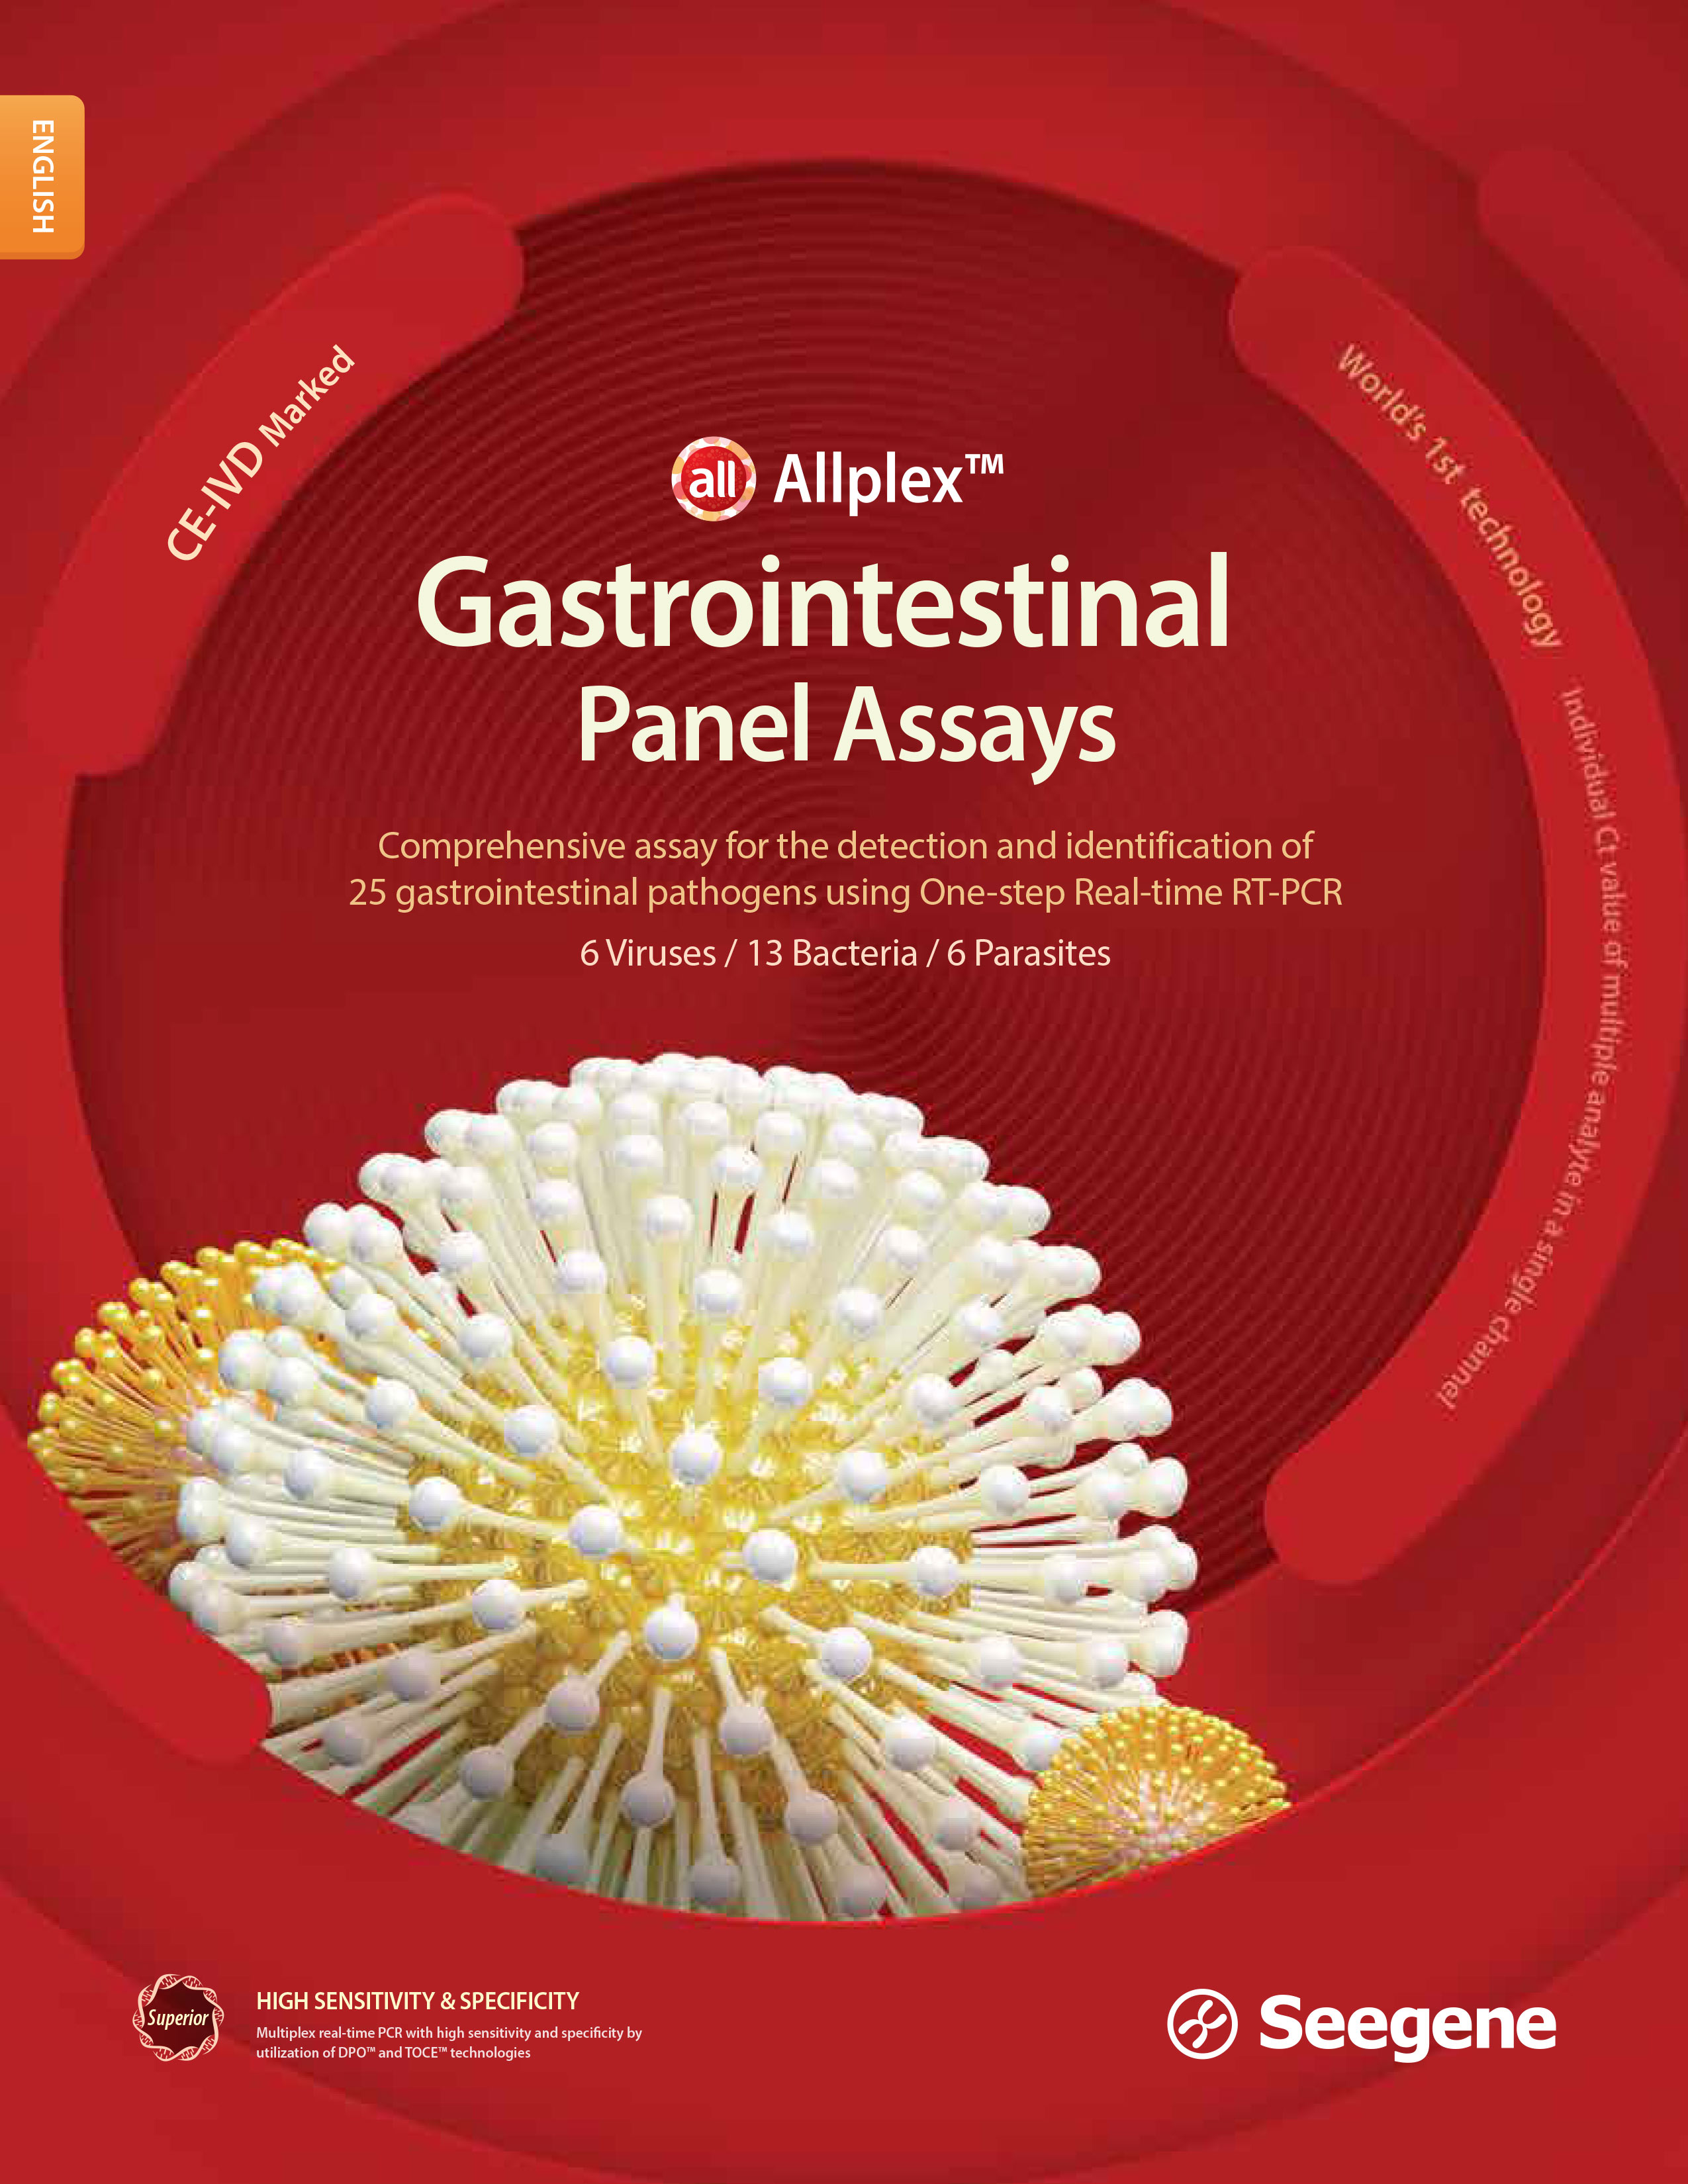 Allplex™ Gastrointestinal Full Panel Assay